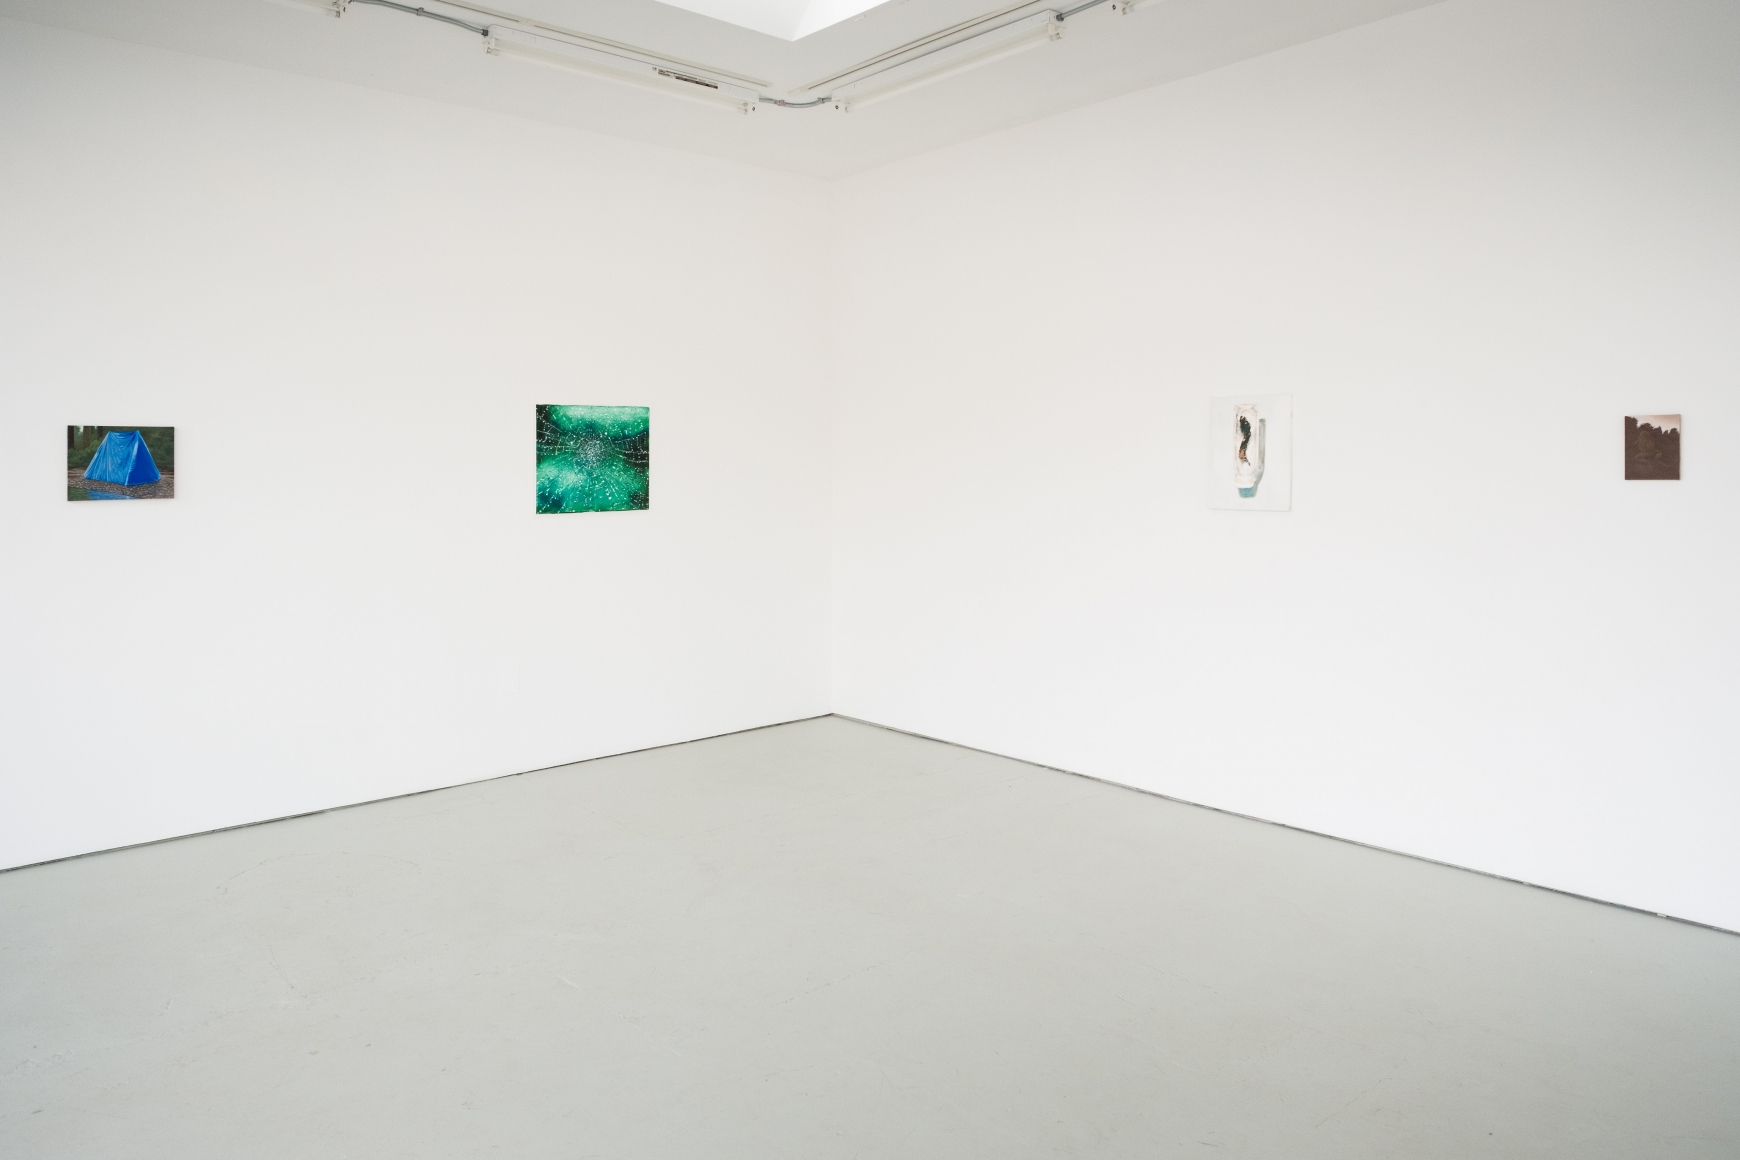 Installation view, A Good Day to Die